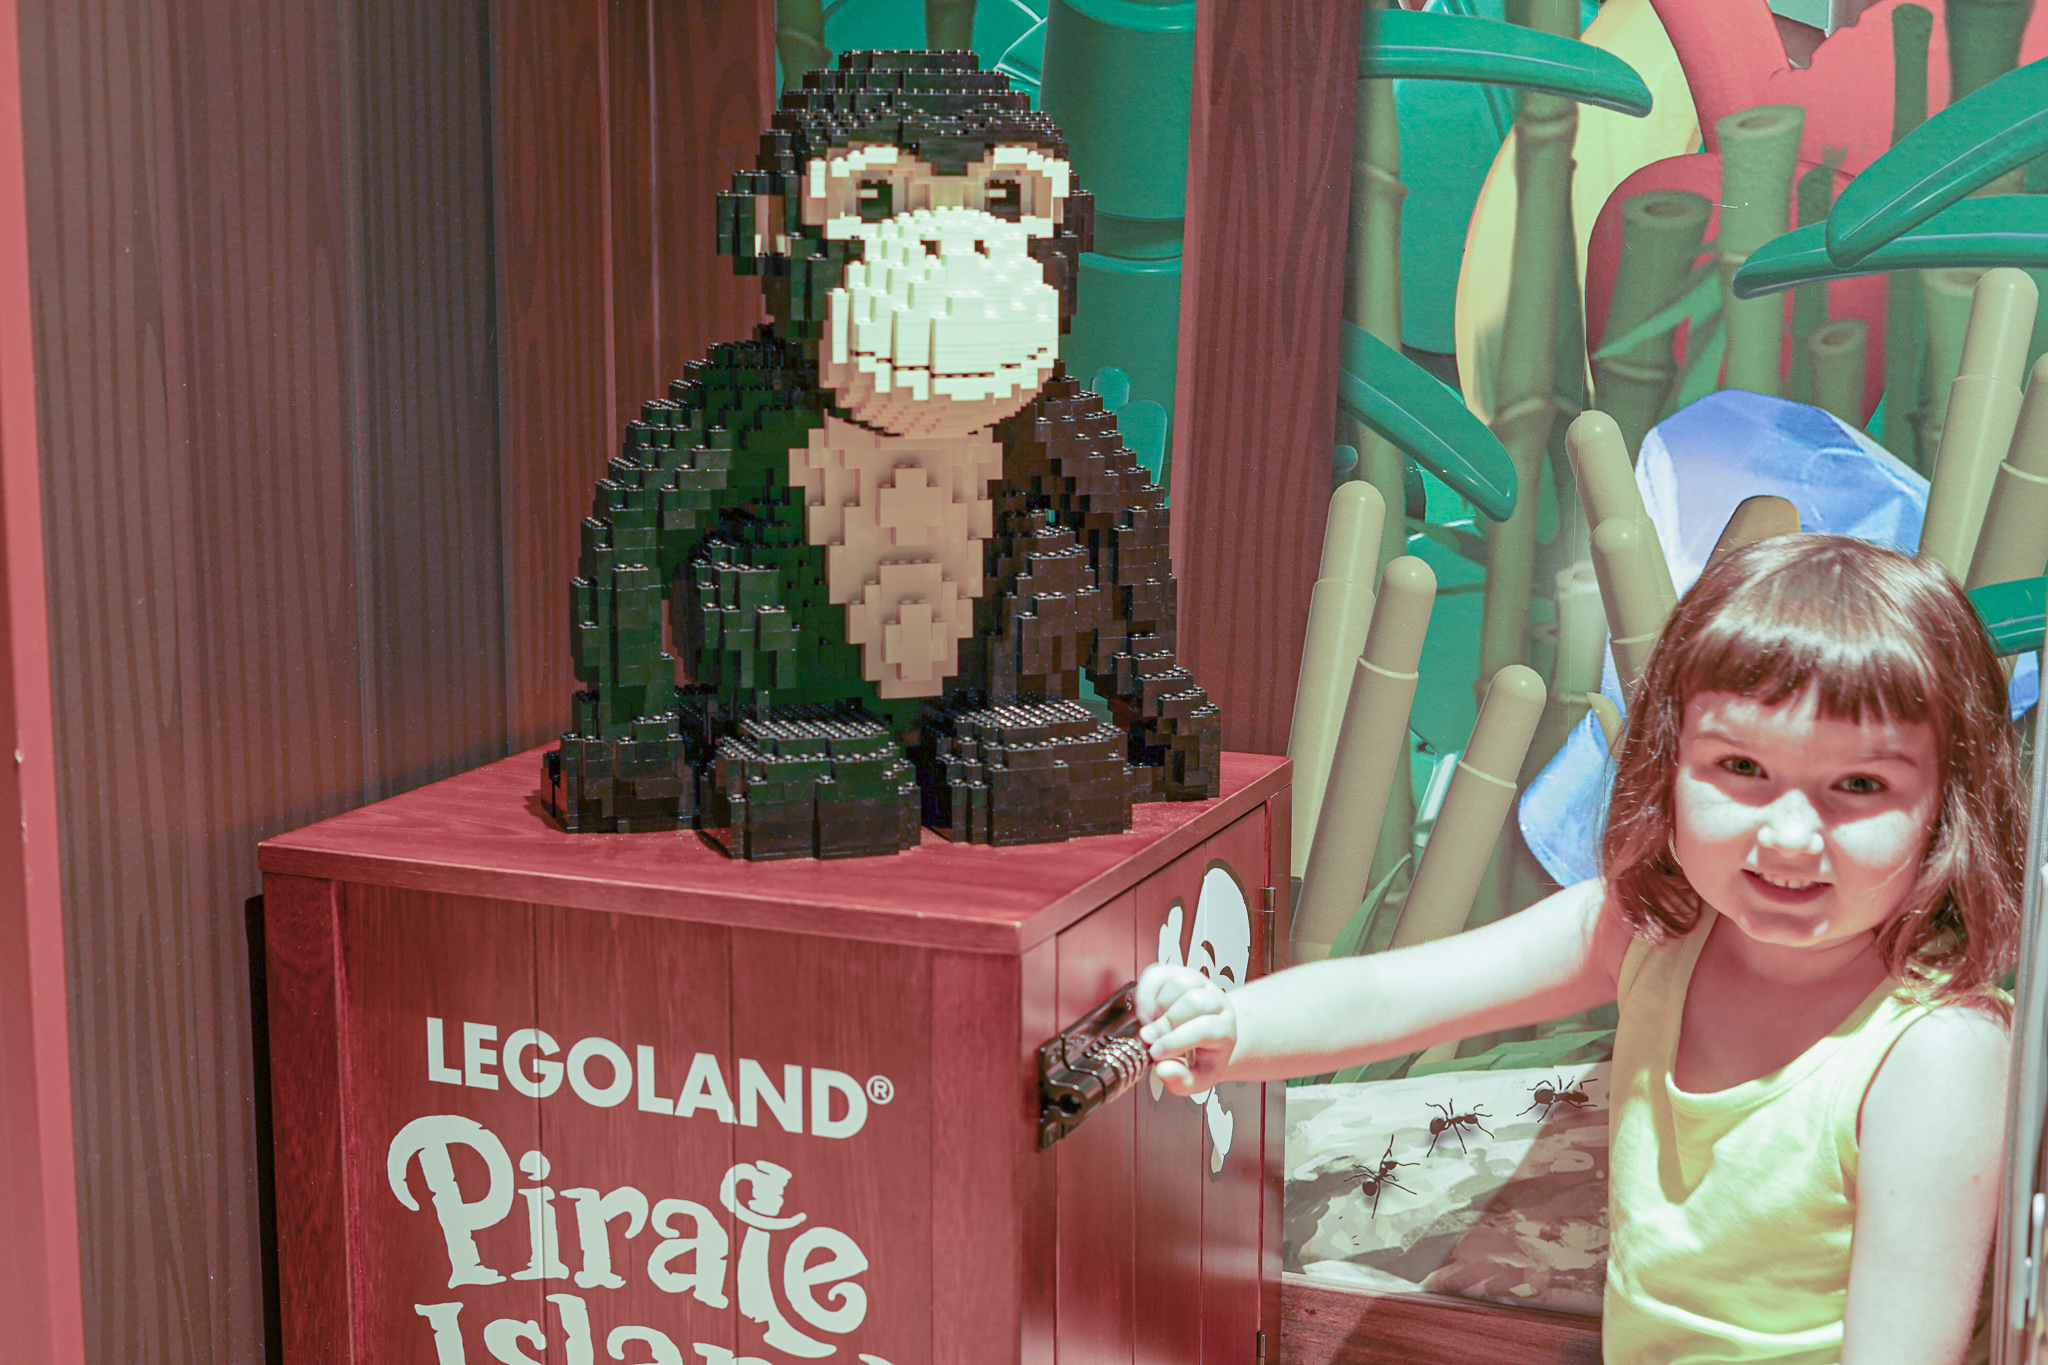 Little girl with a lego monkey at Pirate Island Hotel.   A Guide to LEGOLAND Hotels in Florida